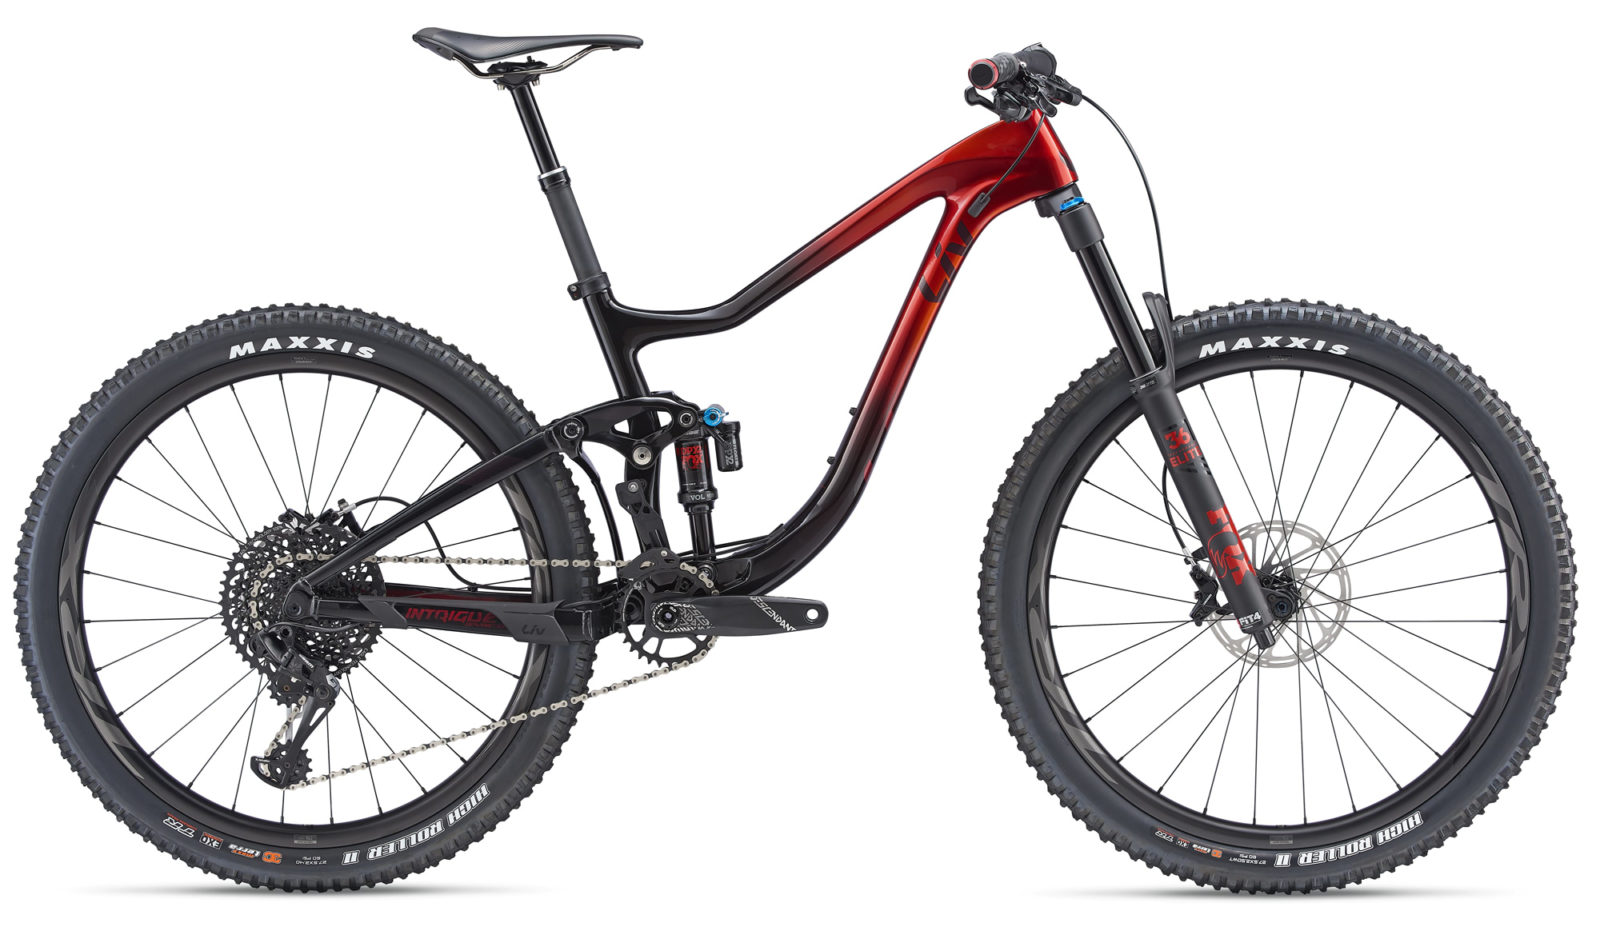 LIV MTB Intrigue Advanced 1 2019